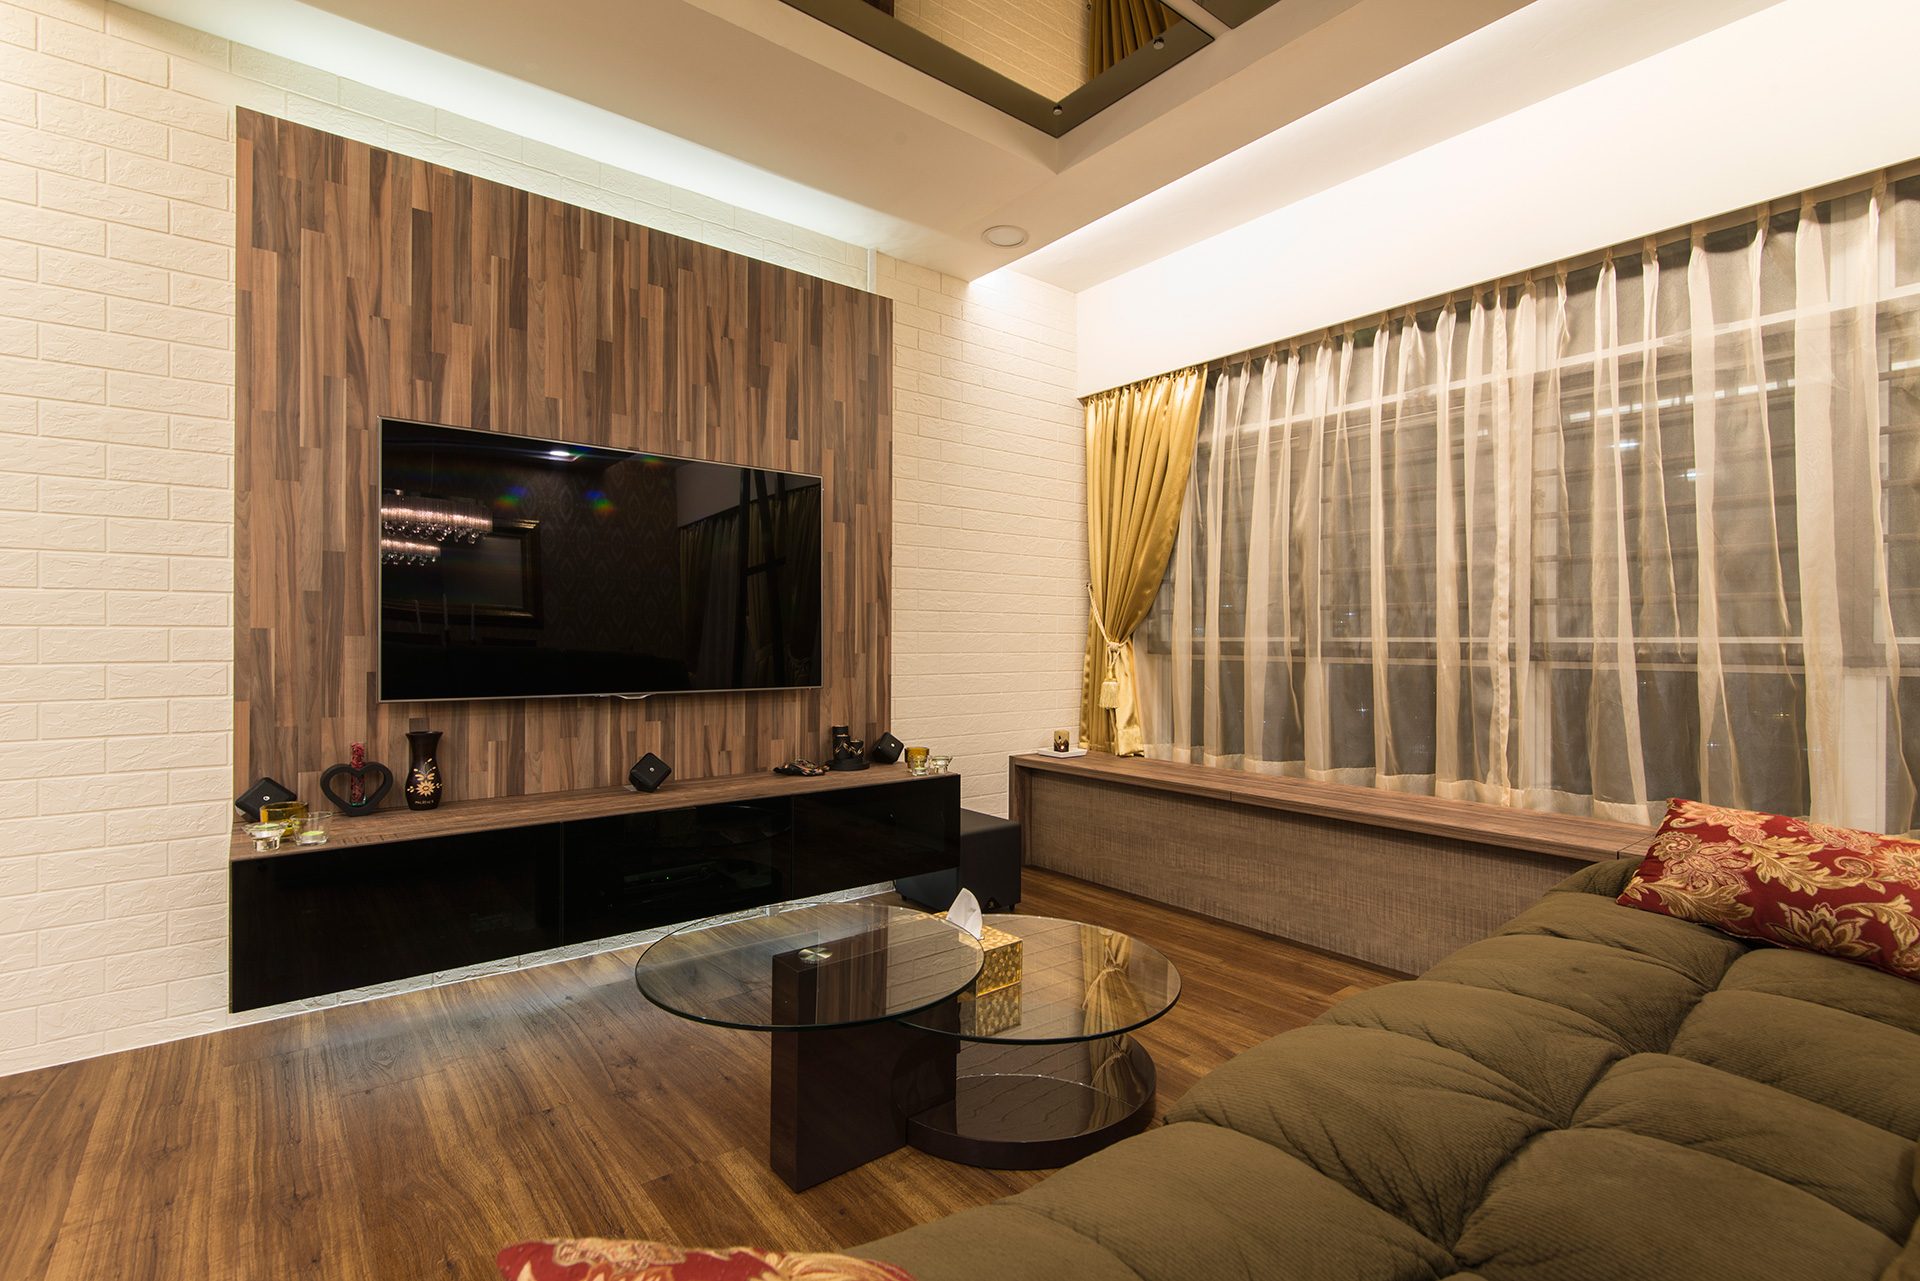 Country, Rustic Design - Living Room - HDB 5 Room - Design by Ideal Design Interior Pte Ltd